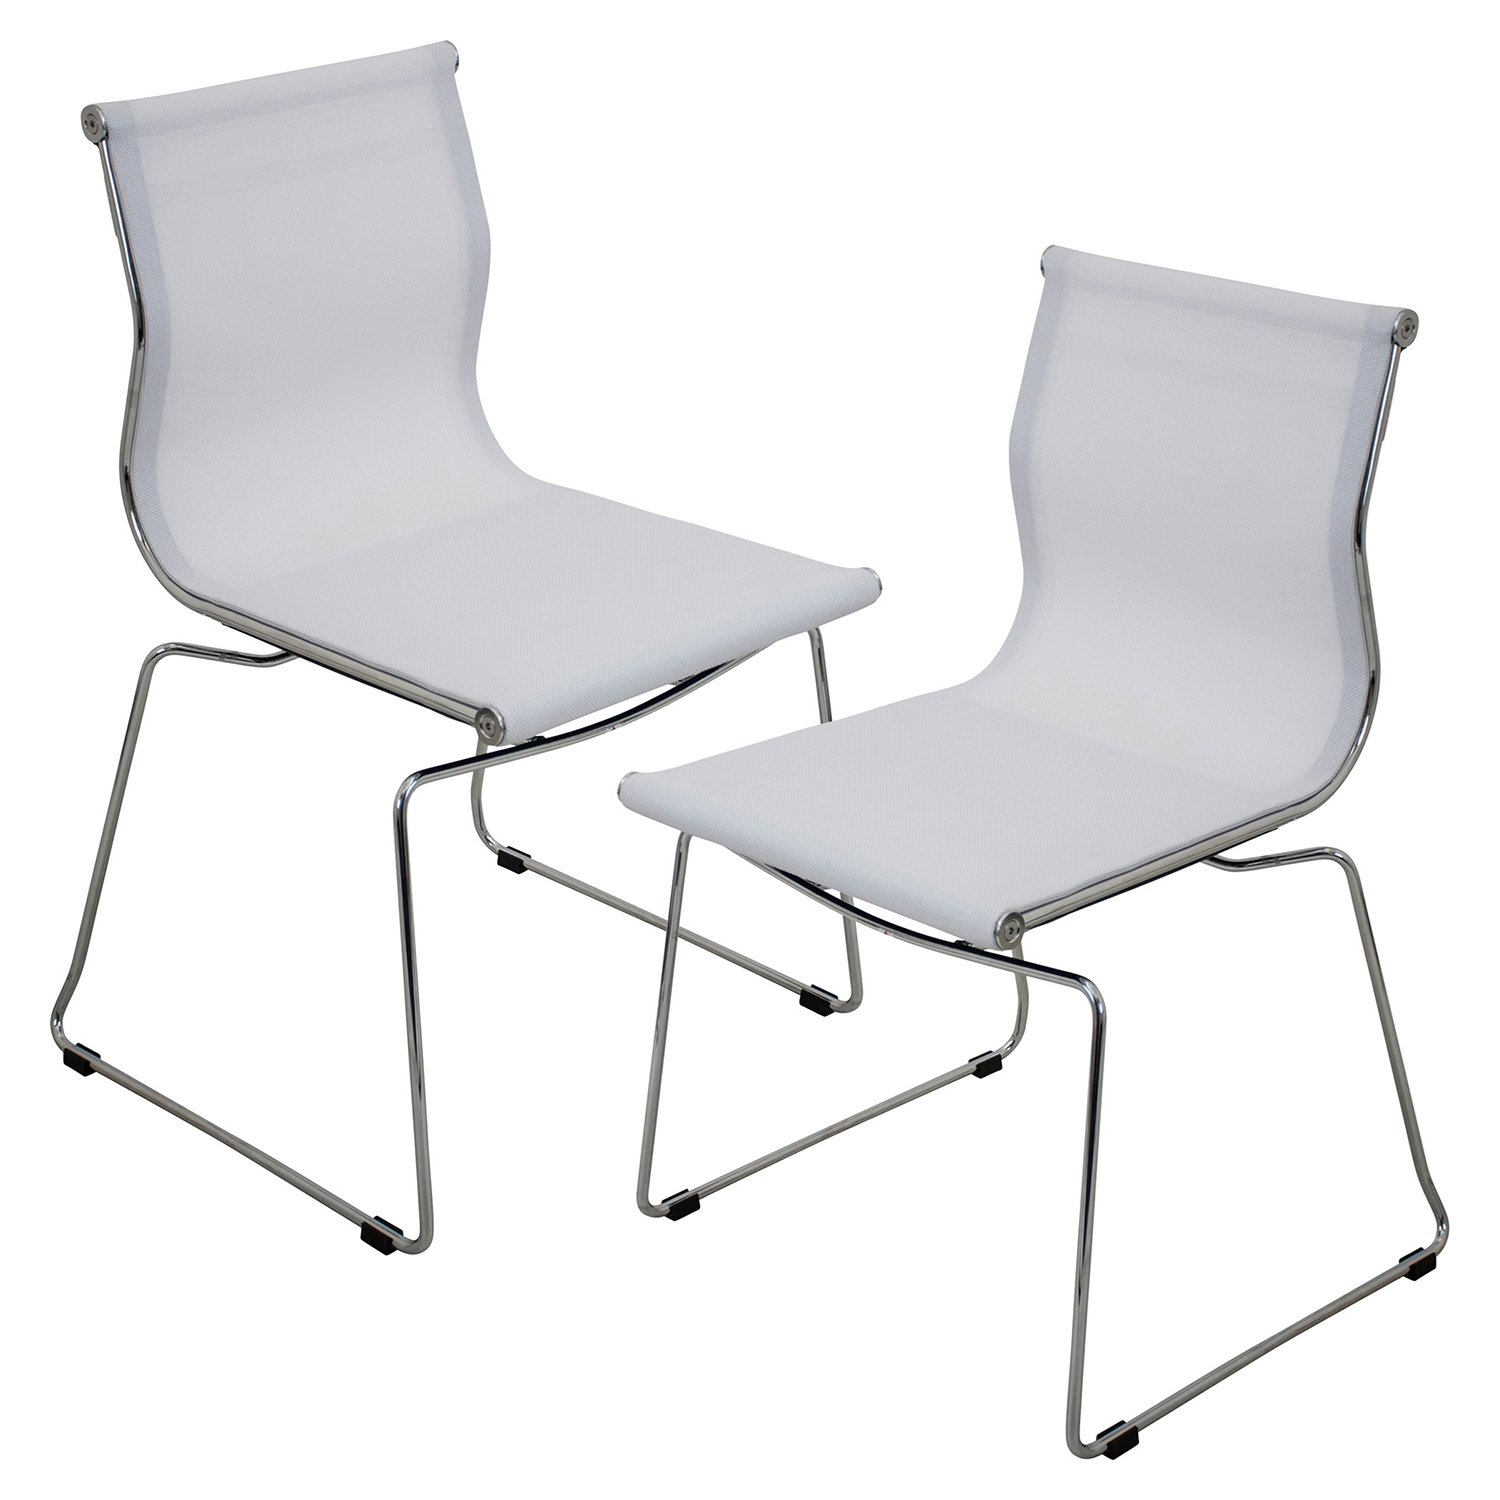 Mirage Stackable Dining Chair - White (Set of 2)